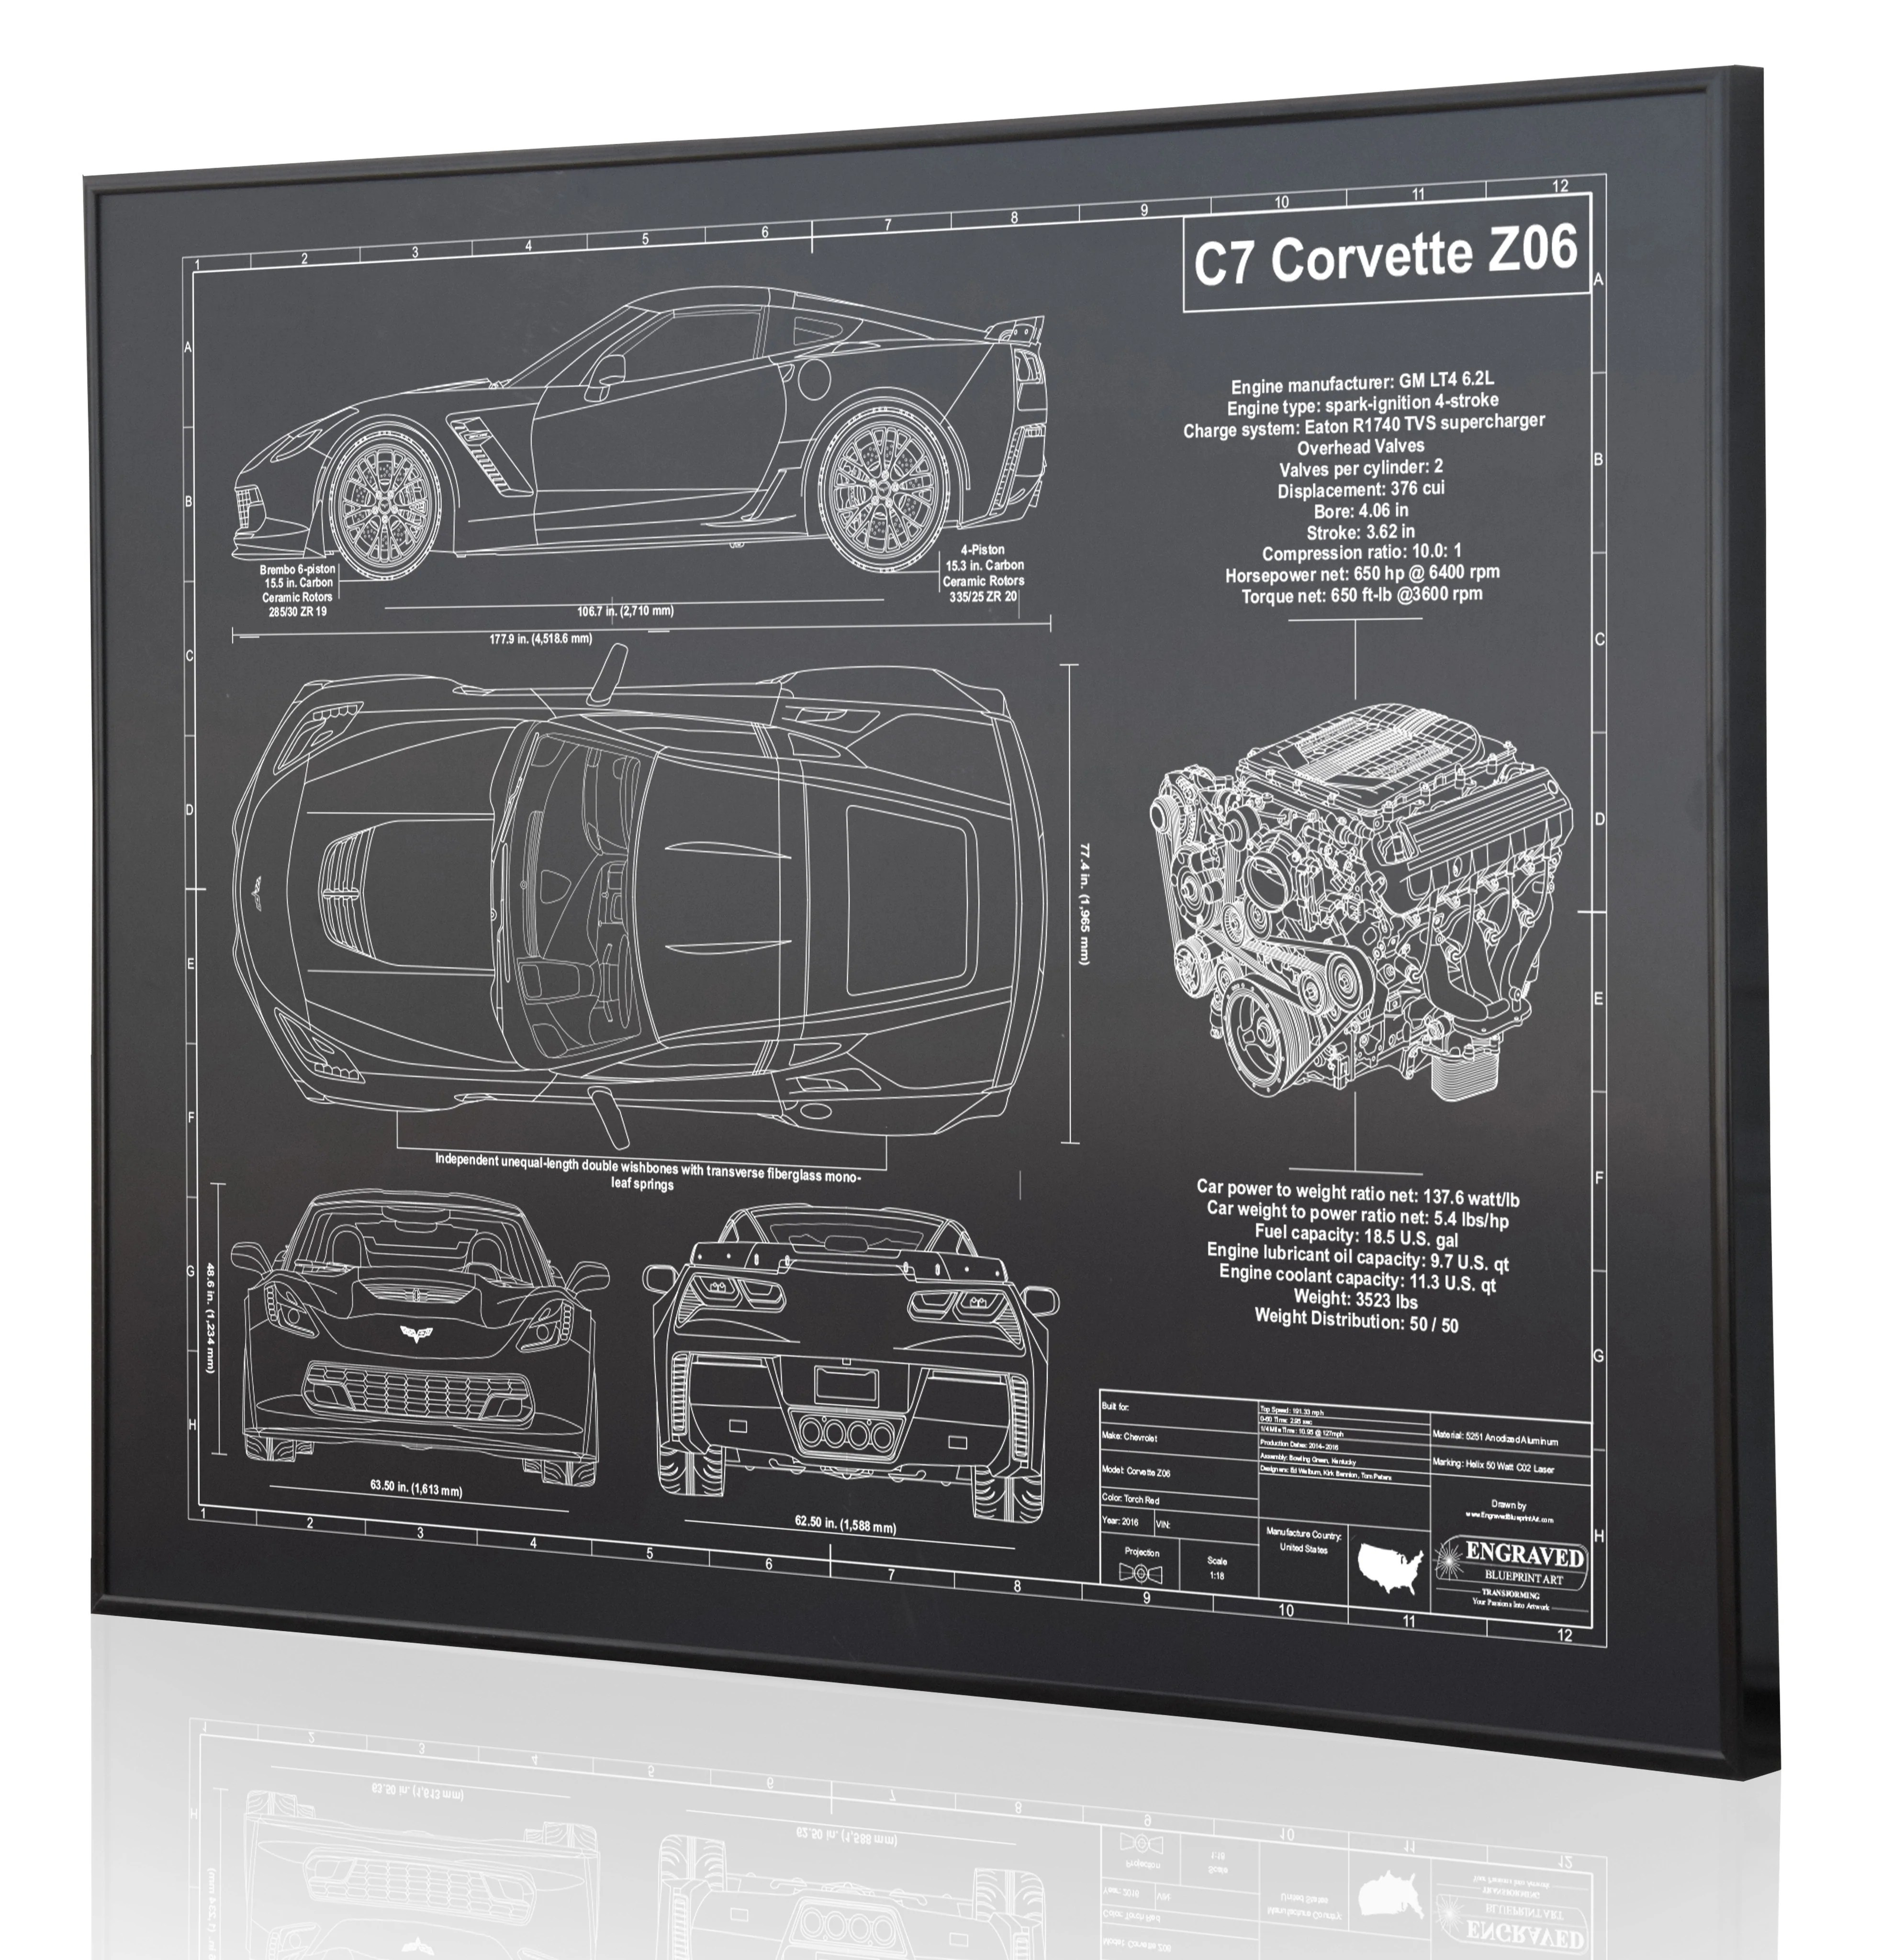 medium resolution of blueprints ford mustang engine diagram wiring diagram box blueprints ford mustang engine diagram